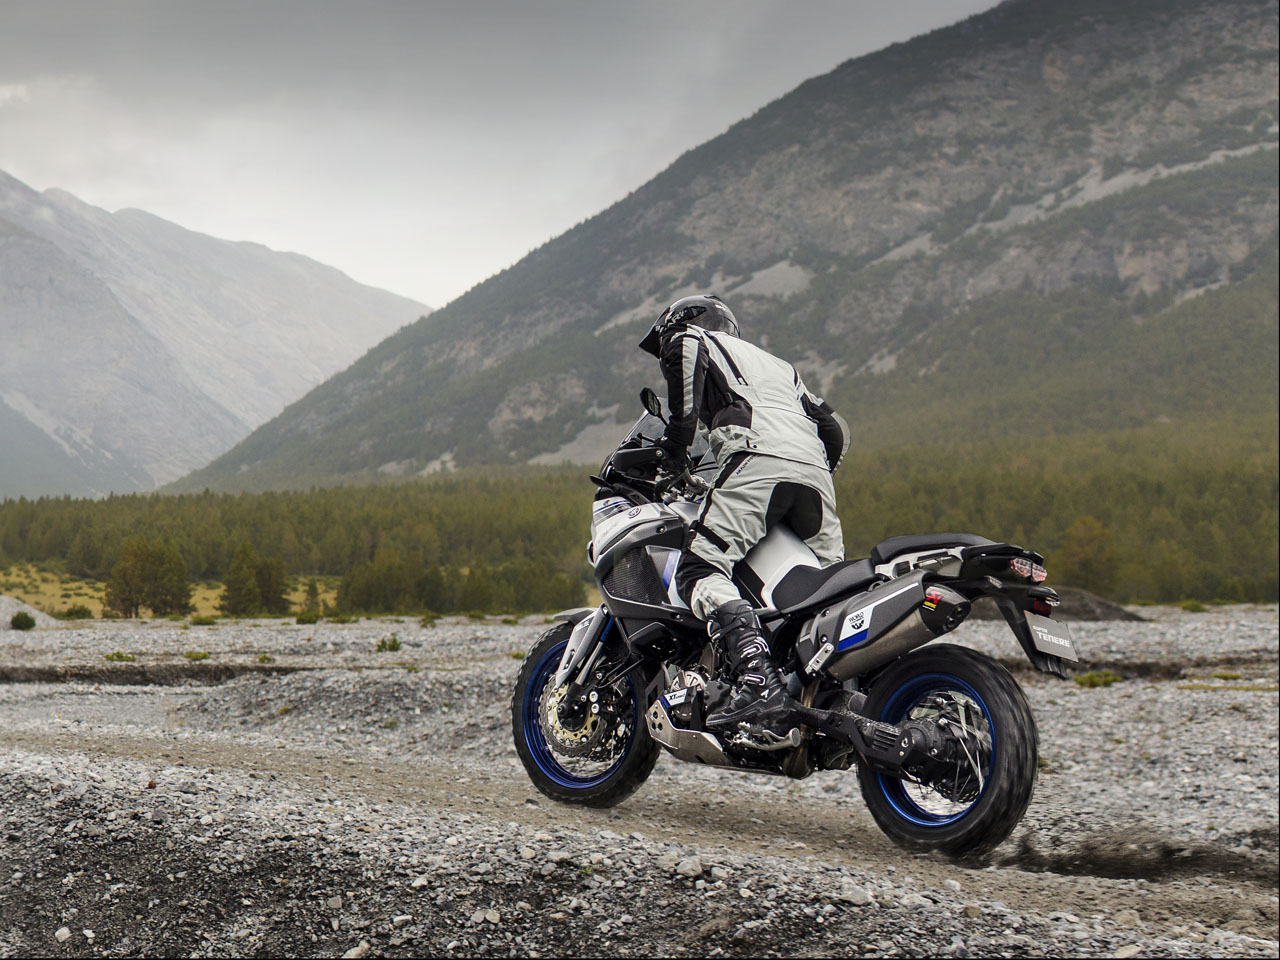 Yamaha XT1200Z in Race Blue colour, being ridden off-track